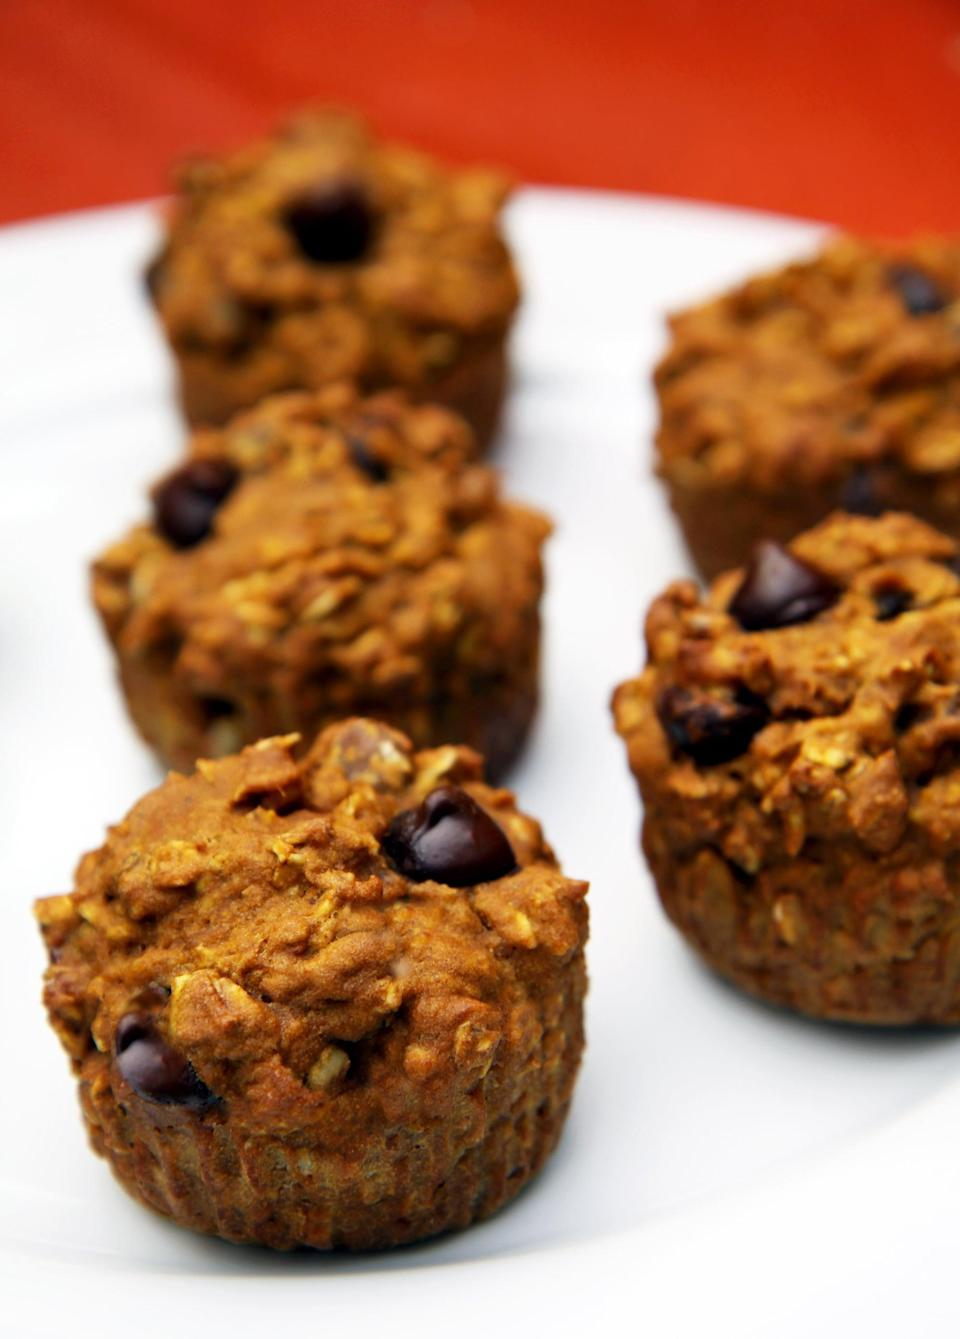 """<p>As a breakfast on the go, these oatmeal dark chocolate chip muffins do not disappoint - they'll leave you satisfied and full of fiber!</p> <p><b>Get the recipe</b>: <a href=""""https://www.popsugar.com/fitness/Healthy-Recipe-Oatmeal-Dark-Chocolate-Chip-Pumpkin-Muffins-5813166"""" class=""""link rapid-noclick-resp"""" rel=""""nofollow noopener"""" target=""""_blank"""" data-ylk=""""slk:oatmeal dark chocolate chip muffins"""">oatmeal dark chocolate chip muffins</a></p>"""